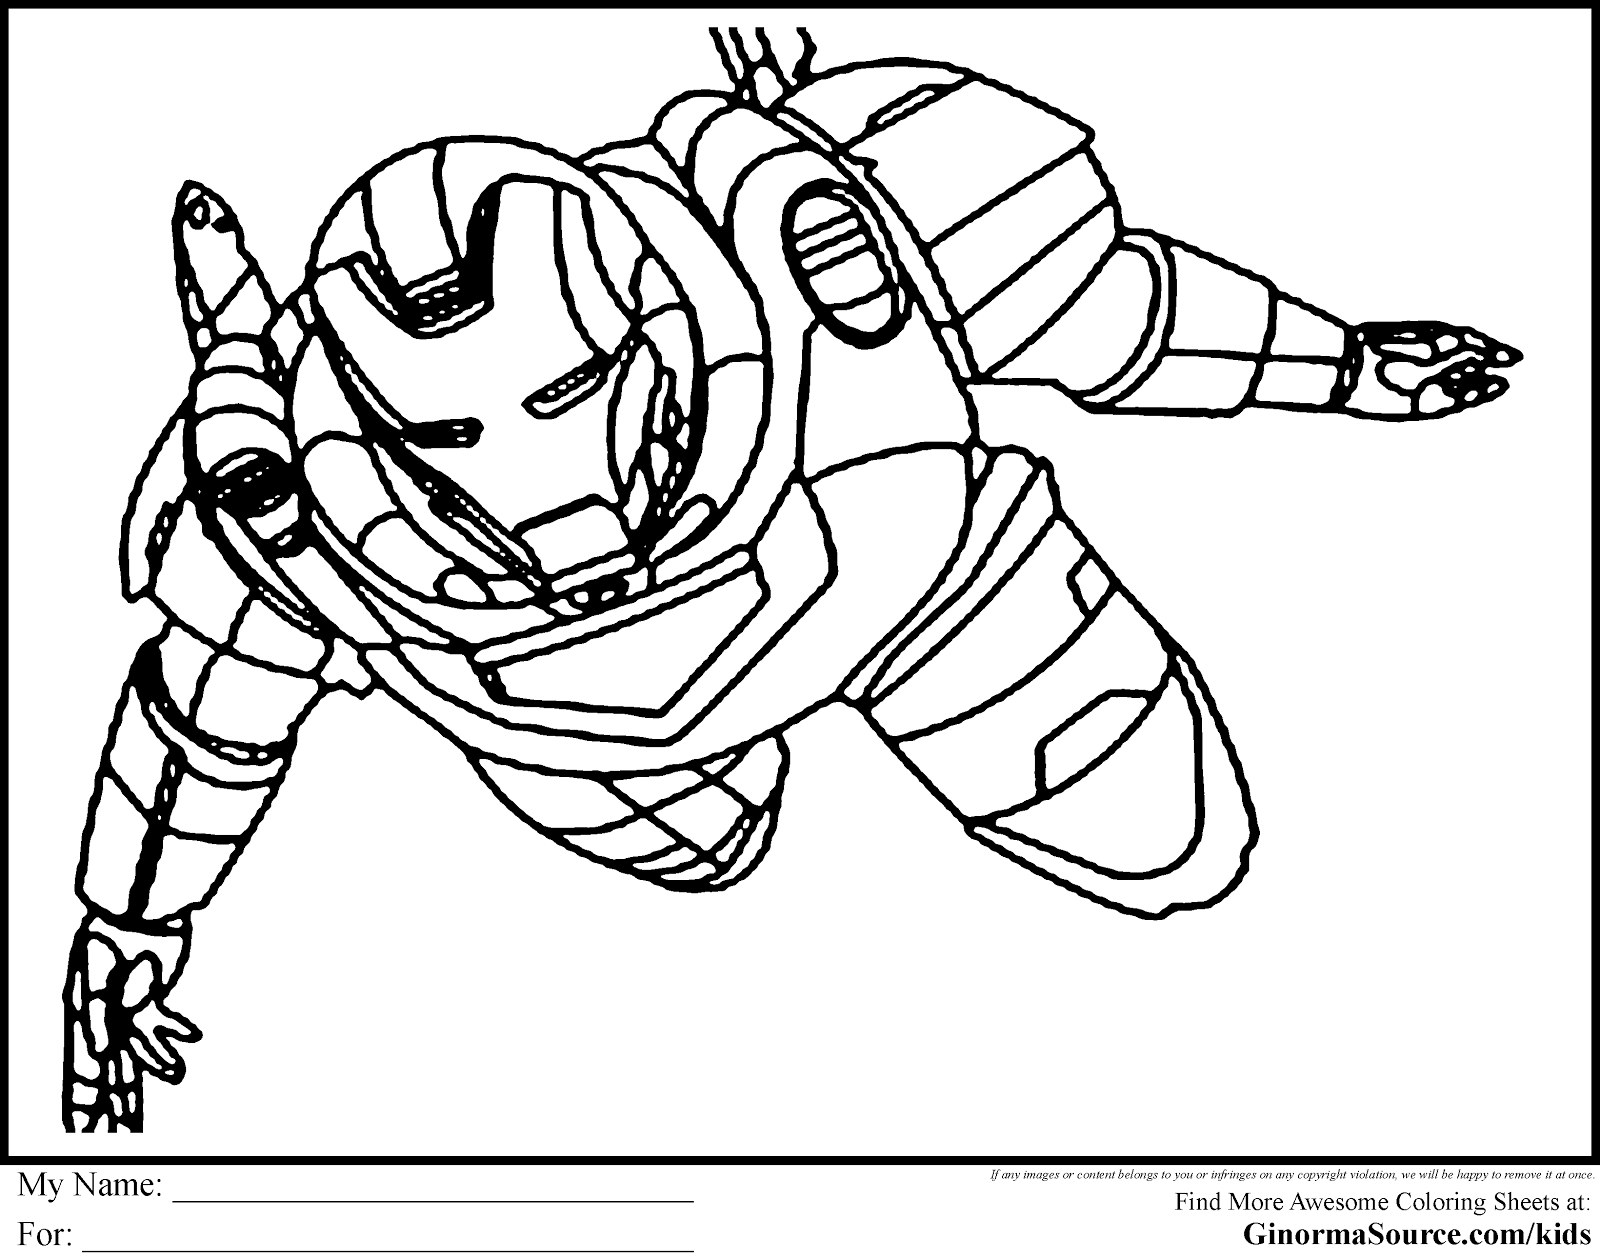 avenger coloring page avengers coloring pages free download best avengers avenger coloring page